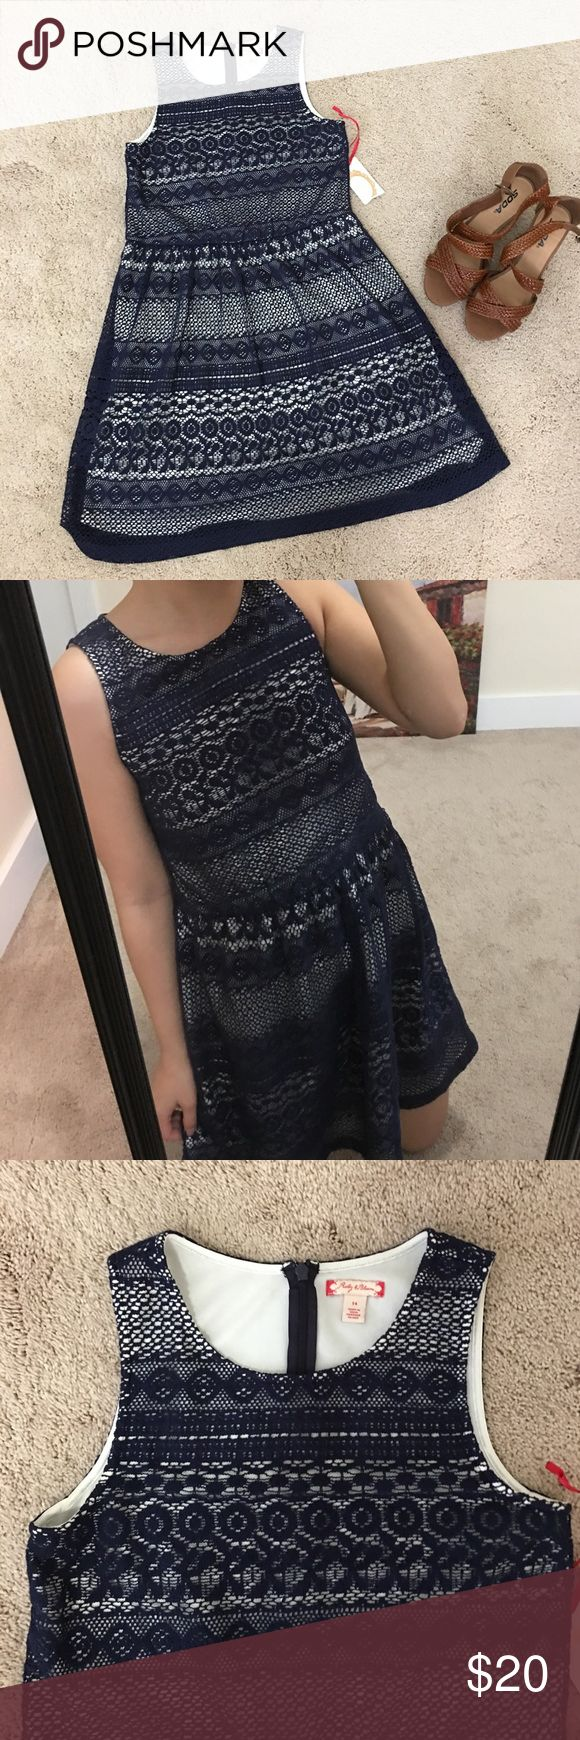 NWT. Nordstrom Ruby & Bloom navy crochet Dress NWT. Nordstrom Ruby & Bloom navy crochet Dress. Size 14 youth / small for women sizes. Zip up. 80% cotton. 20% nylon.  100% polyester for lining ruby & bloom Dresses